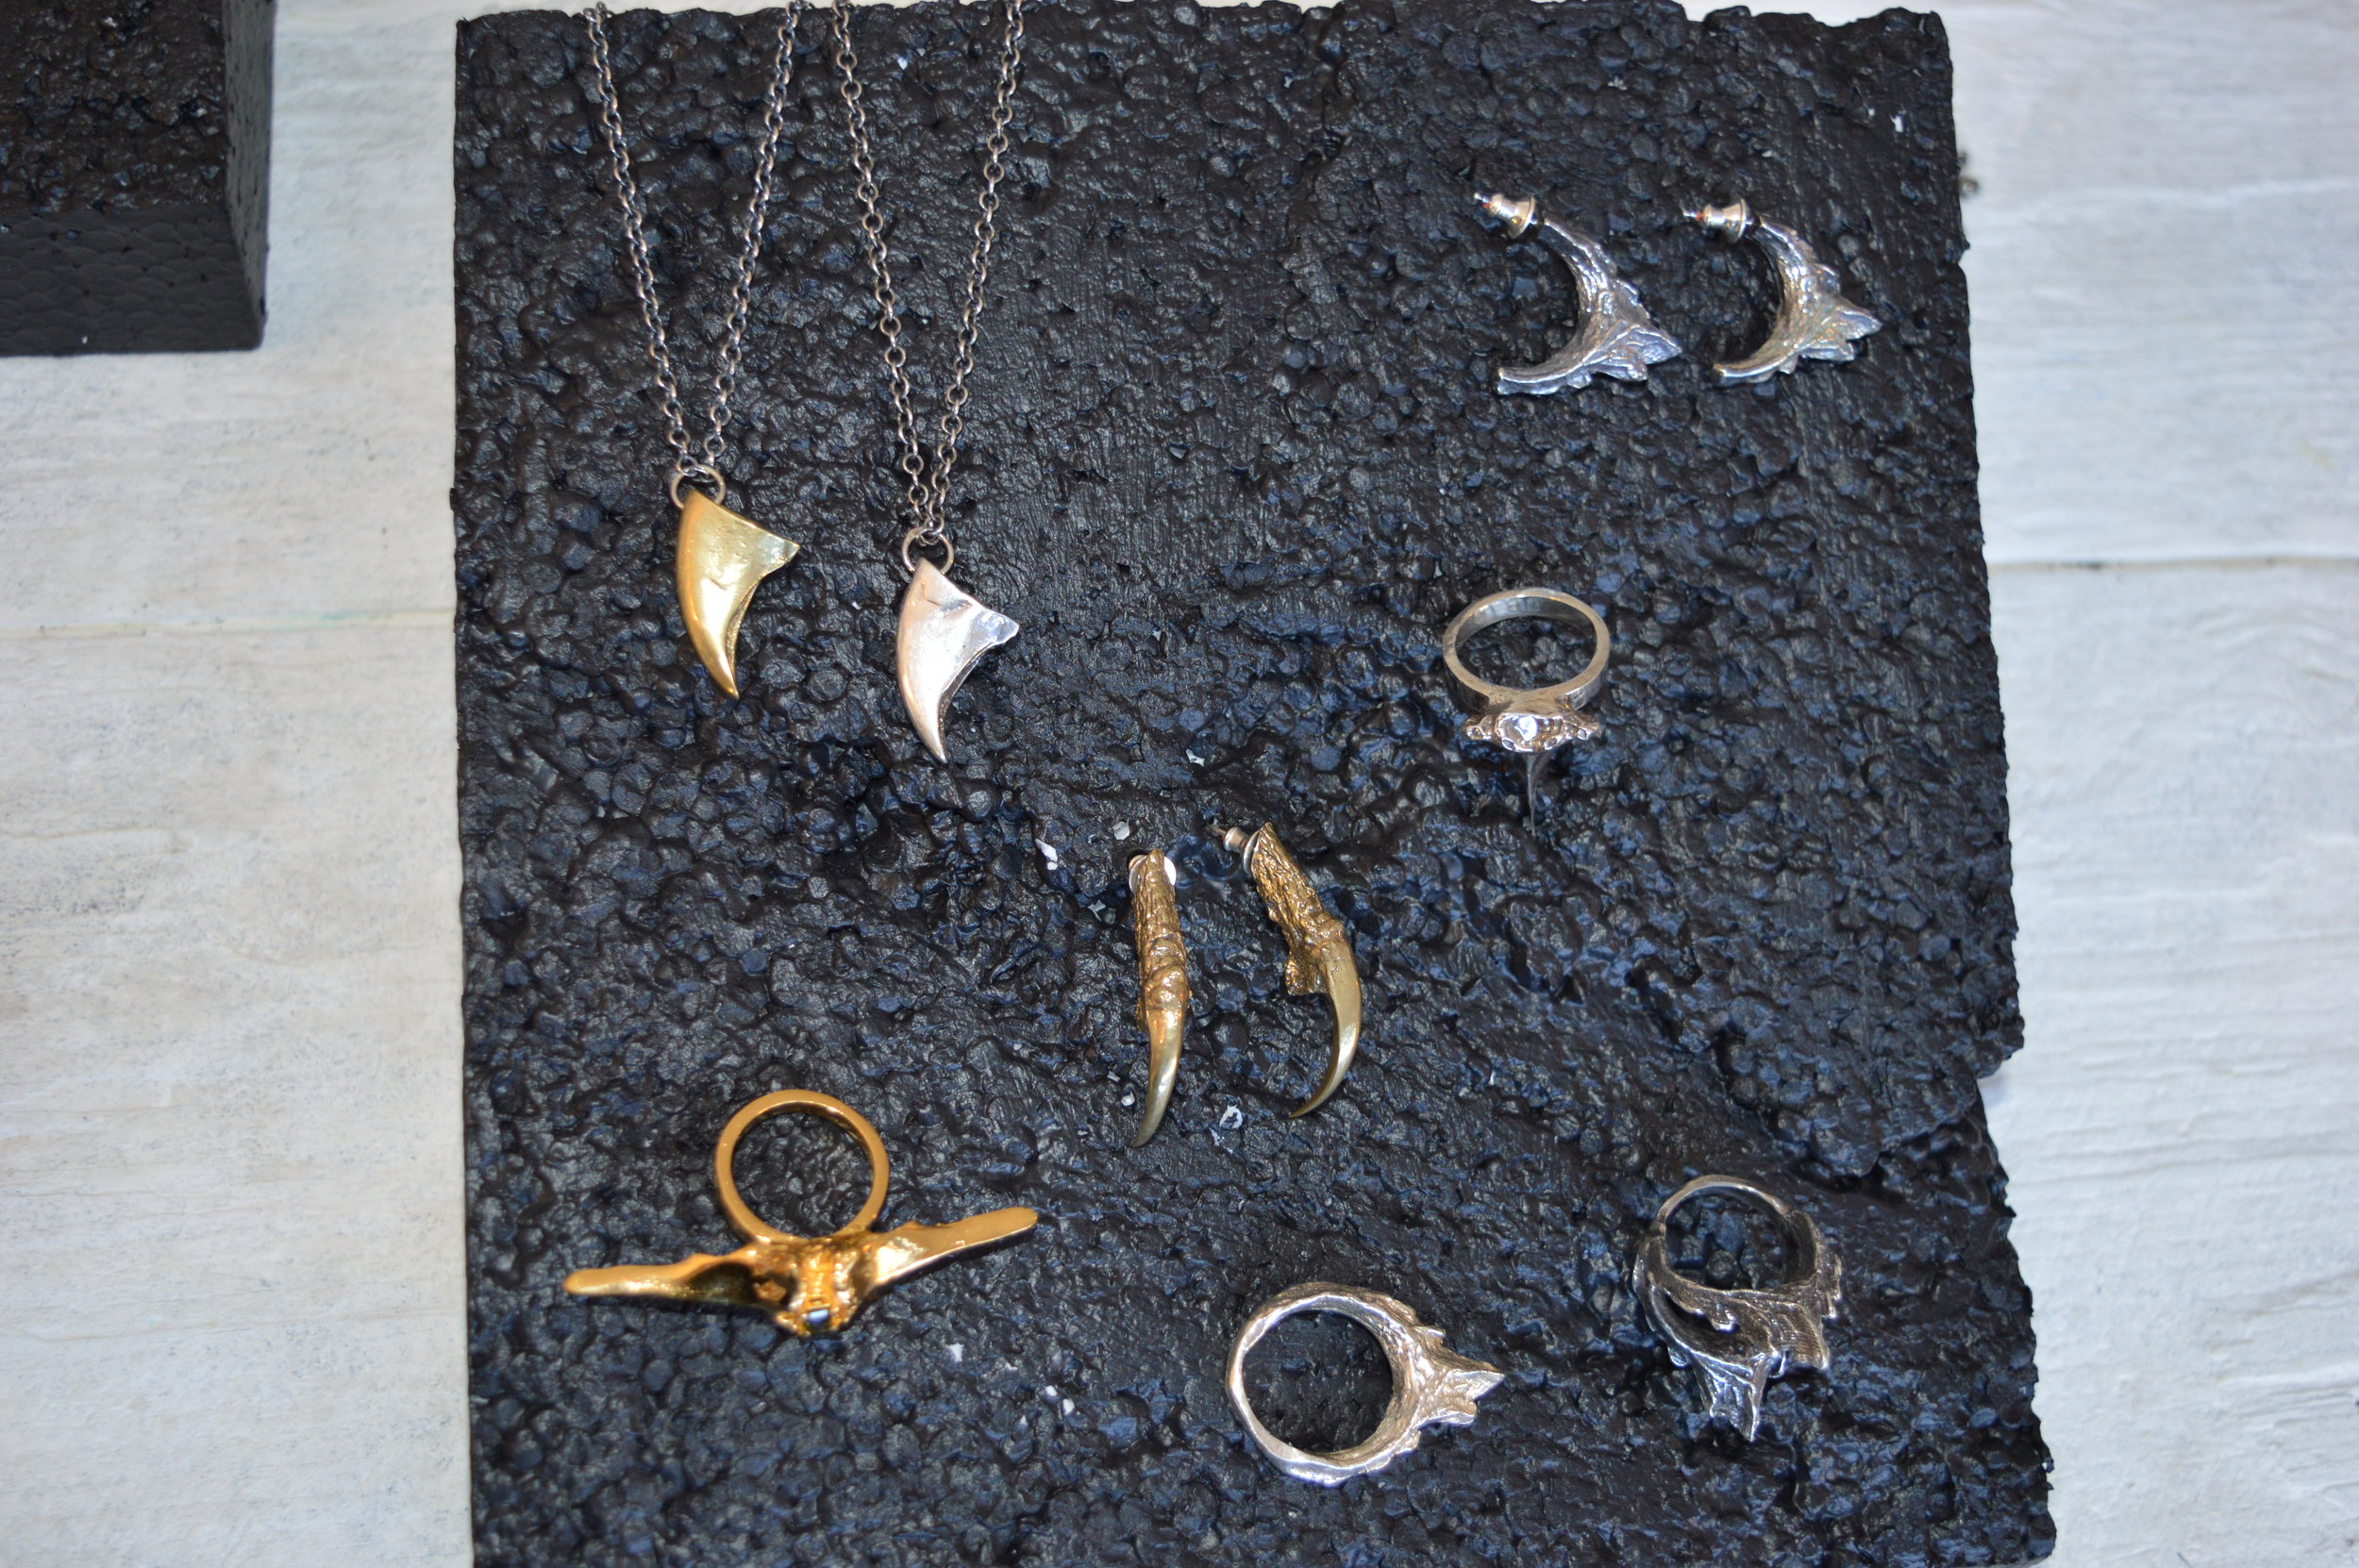 A selection of pieces I sent over for the event.